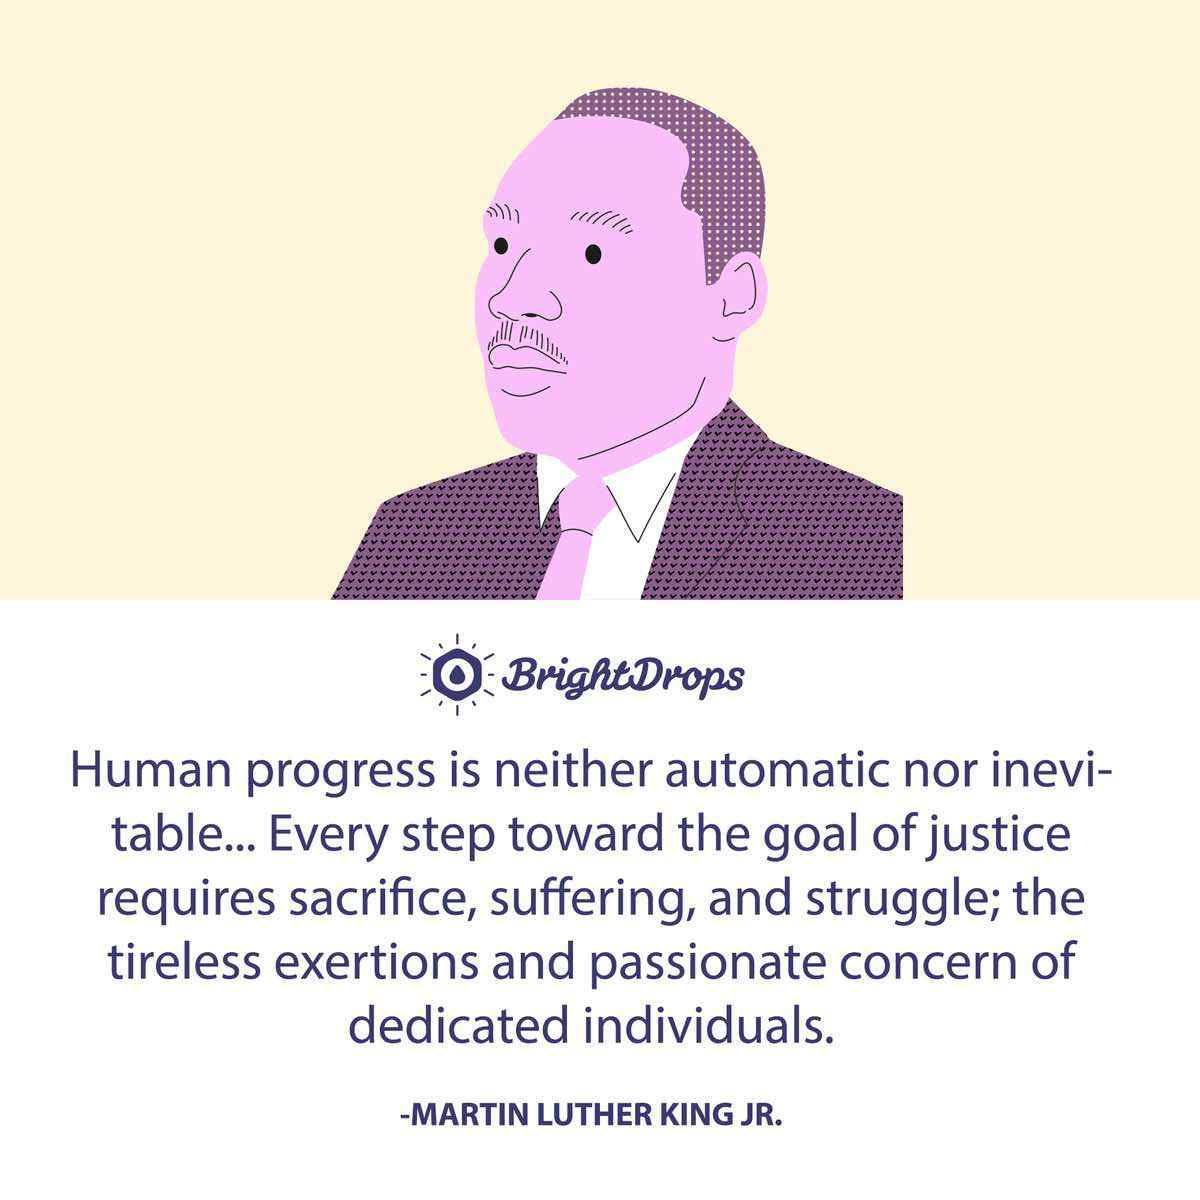 Human progress is neither automatic nor inevitable... Every step toward the goal of justice requires sacrifice, suffering, and struggle; the tireless exertions and passionate concern of dedicated individuals. -Martin Luther King Jr.